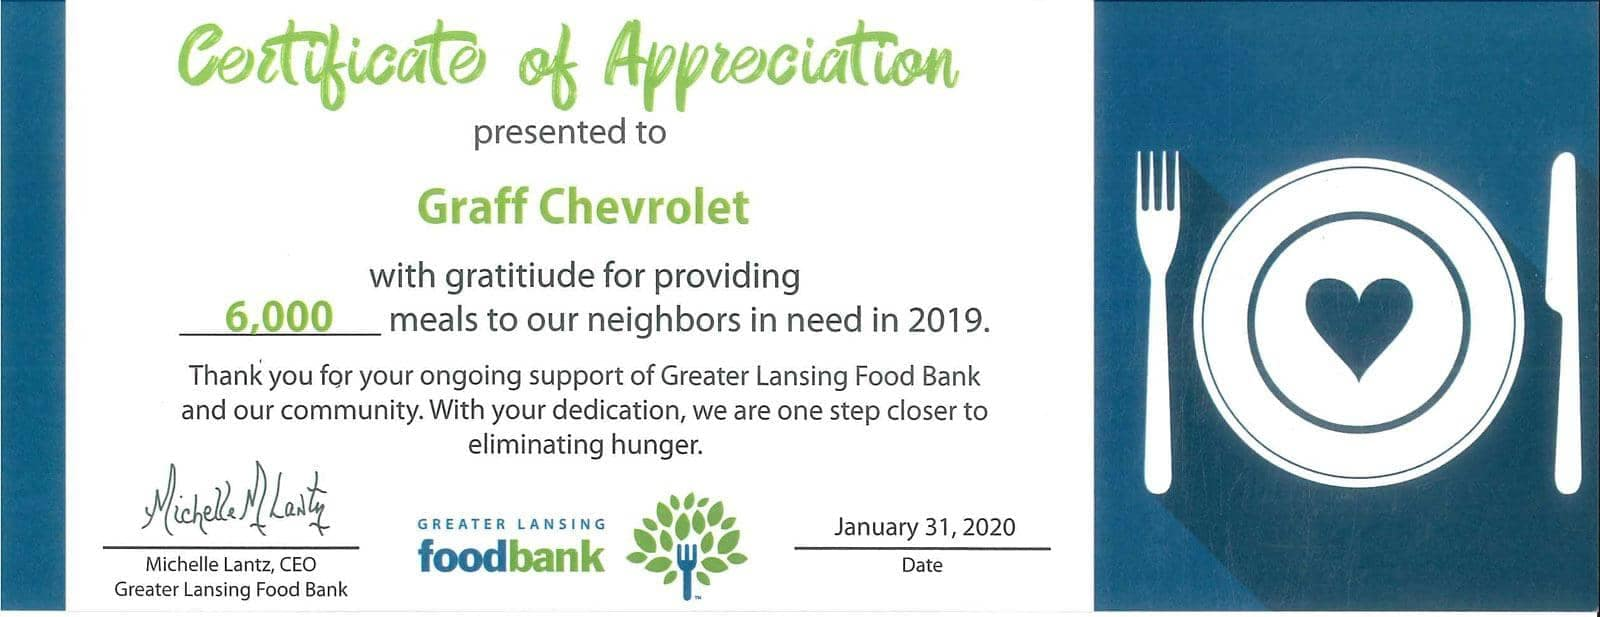 TYletter - food Bank - certificate of appreciation